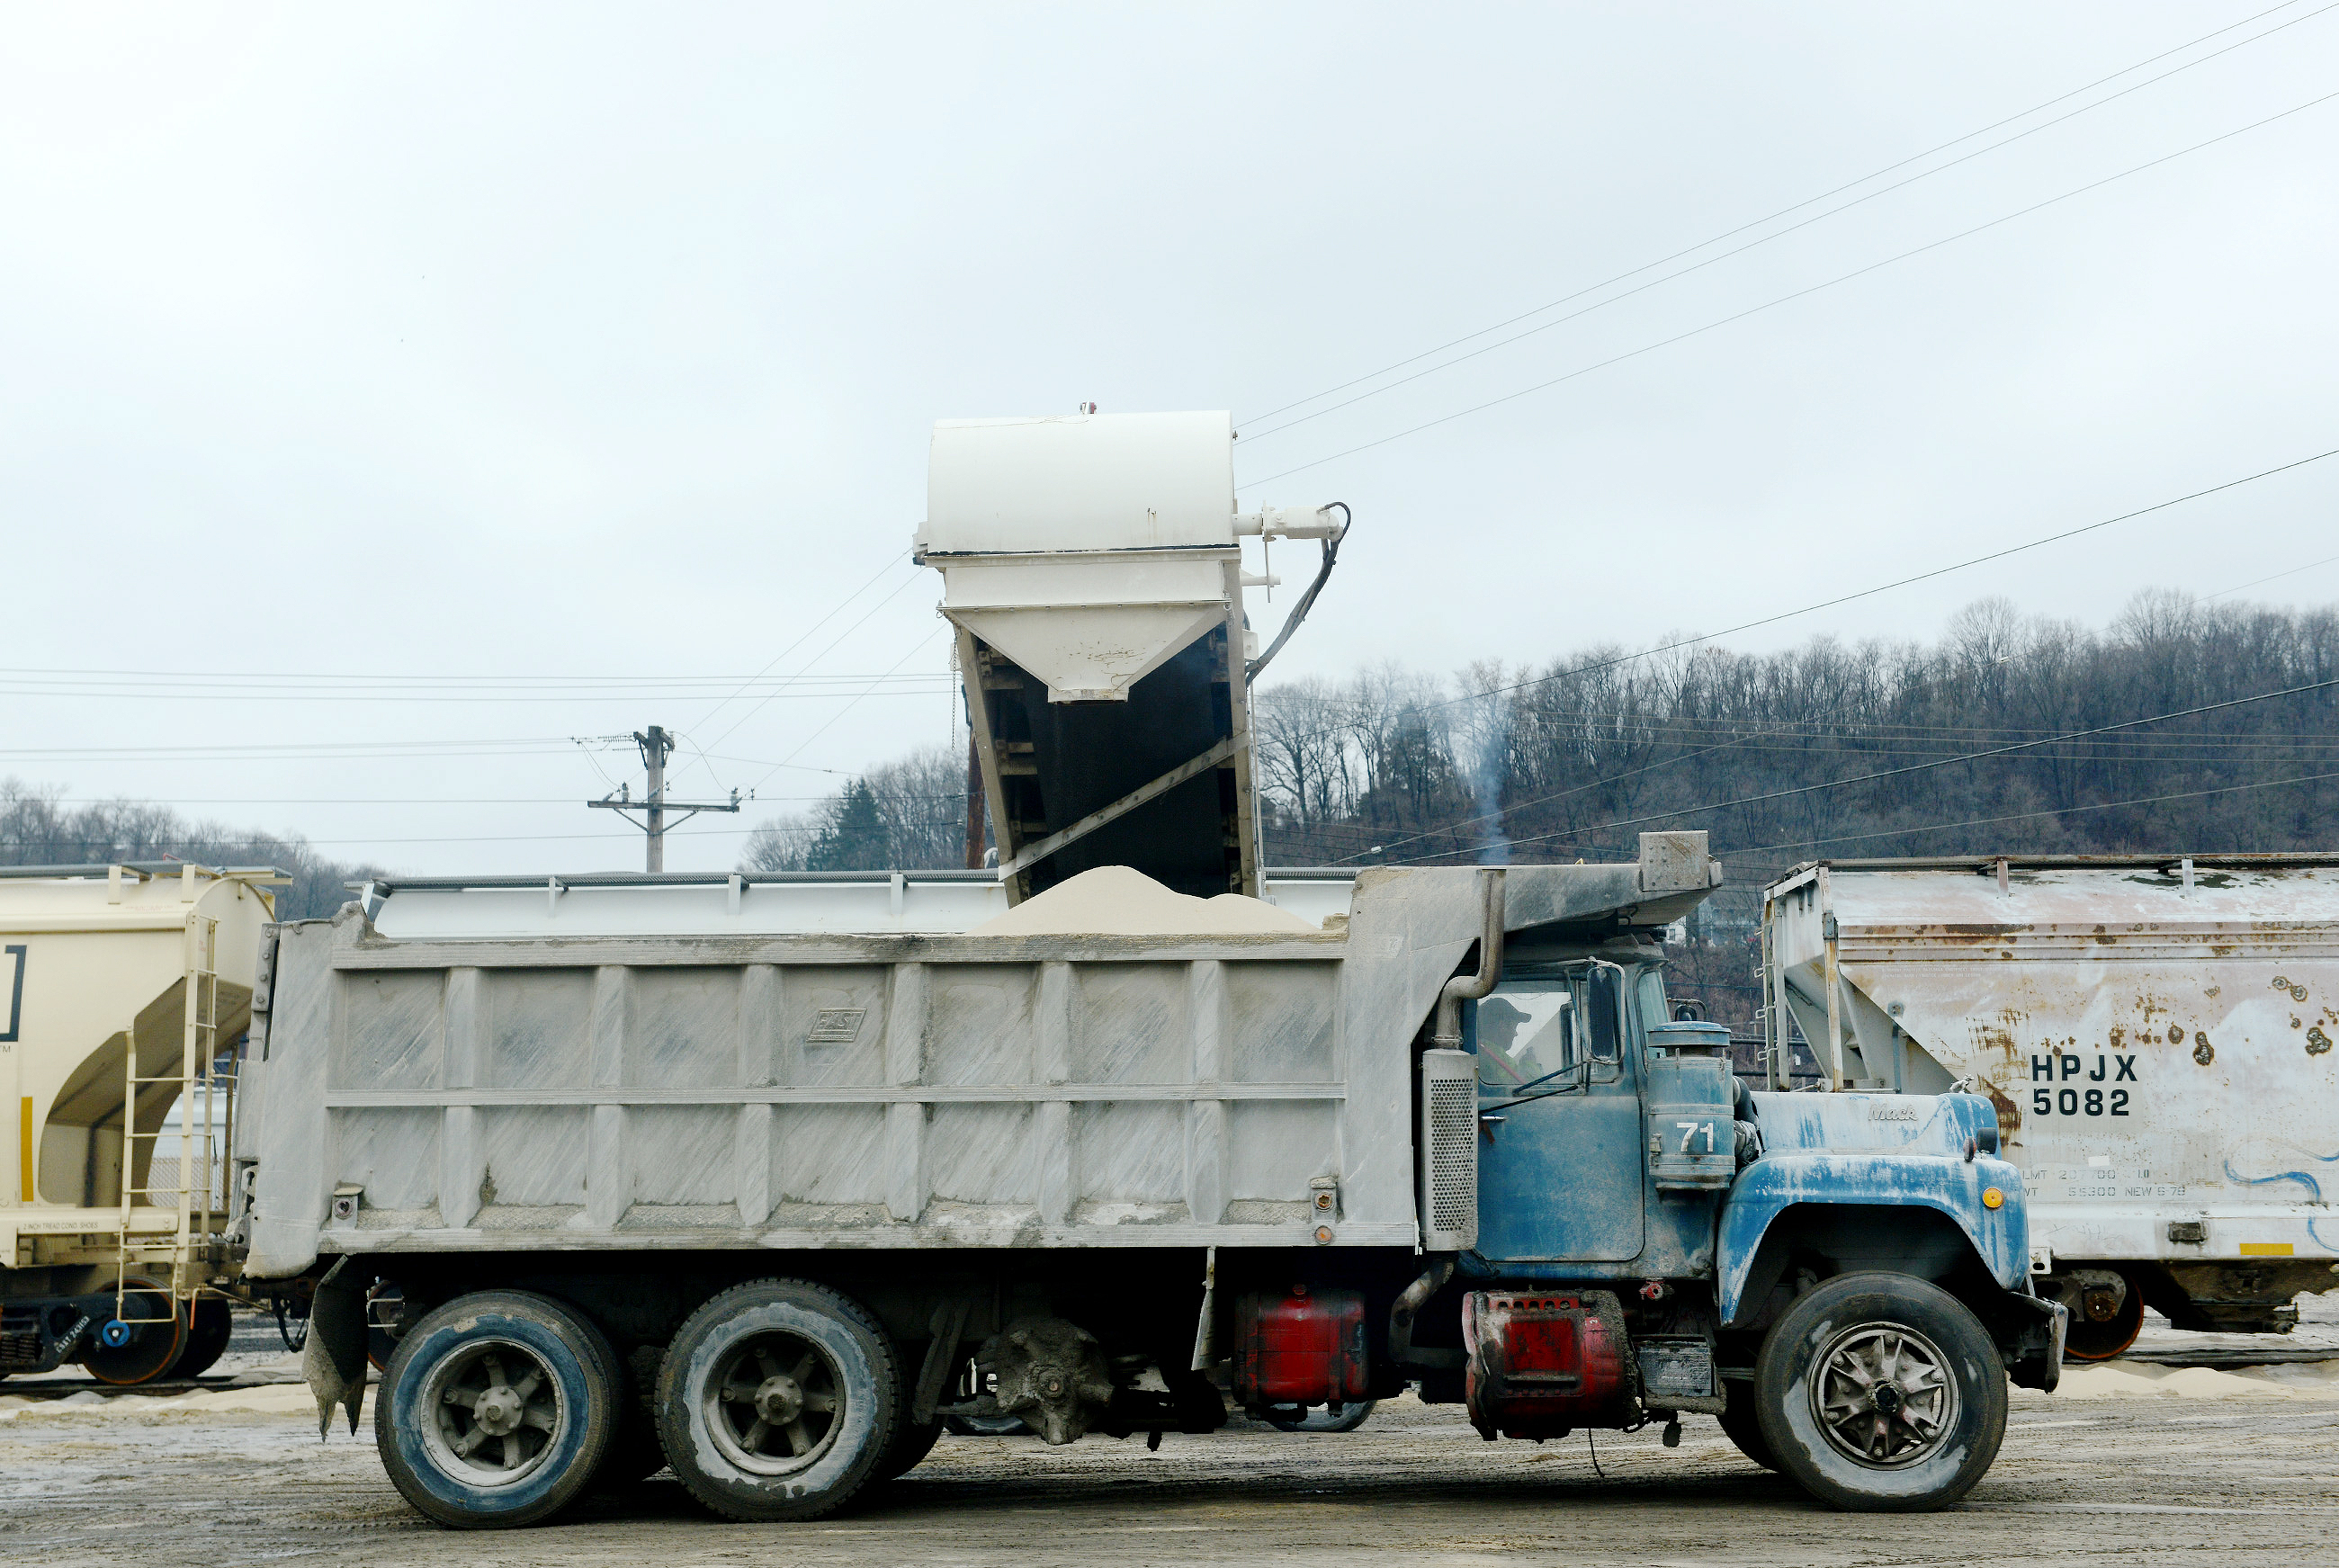 20150320MWHmrieBiz02-1 Sand, used by drillers during the hydraulic fracturing process to prop open cracks in the ground to extract natural gas from the Marcellus and Utica shale plays, is loaded onto a truck after it is filtered at McKees Rocks Industrial Enterprises. The company sees more than 50,000 truckloads leave its facilities each year.